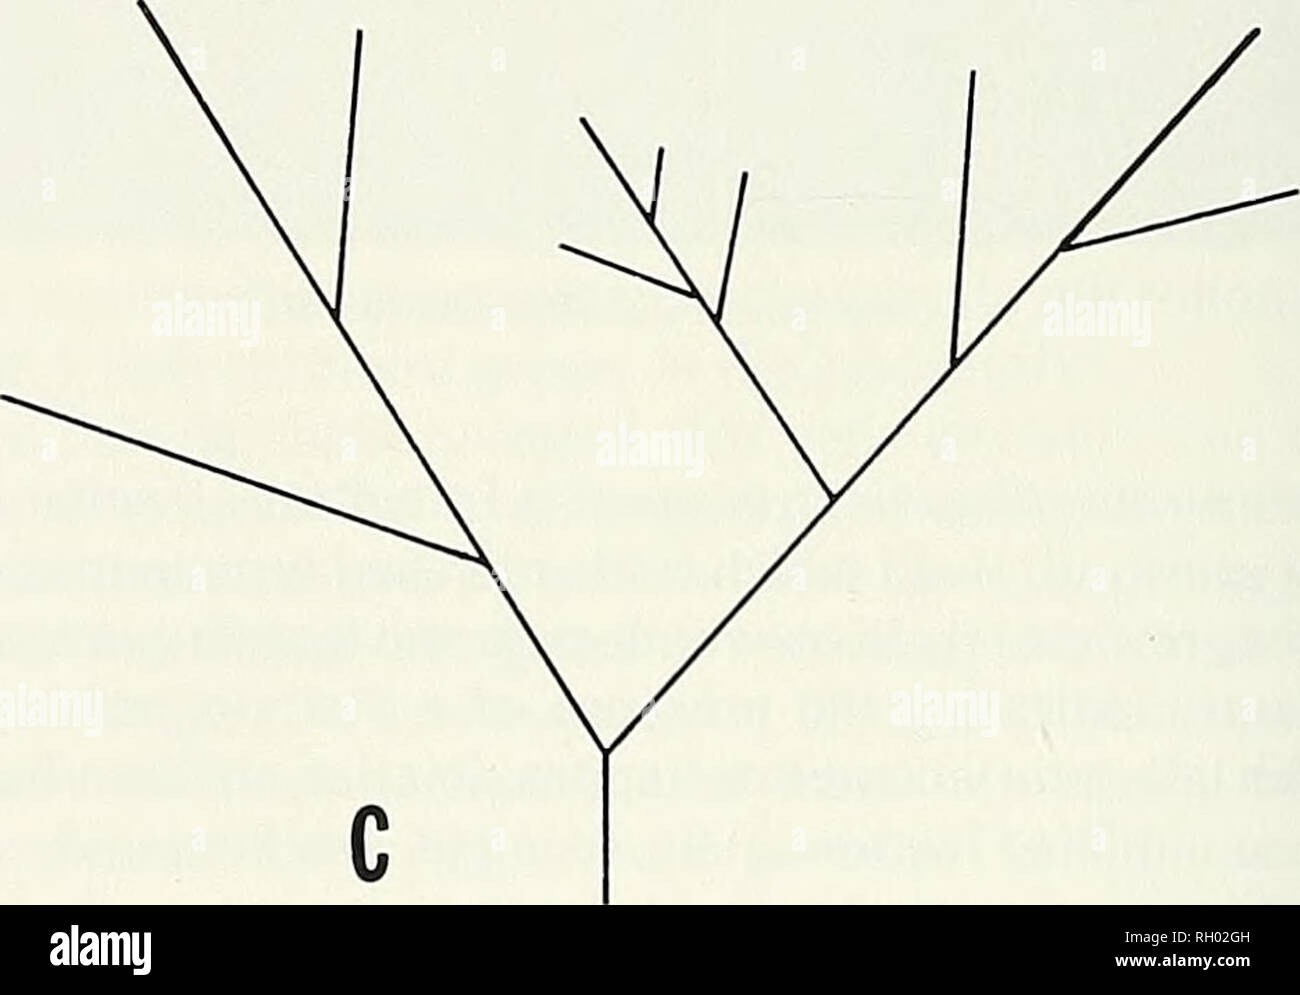 hight resolution of diagram of branching patterns of selected field grown specimens see text for explanation measure up to 50 u m in diameter a non fertile margin always